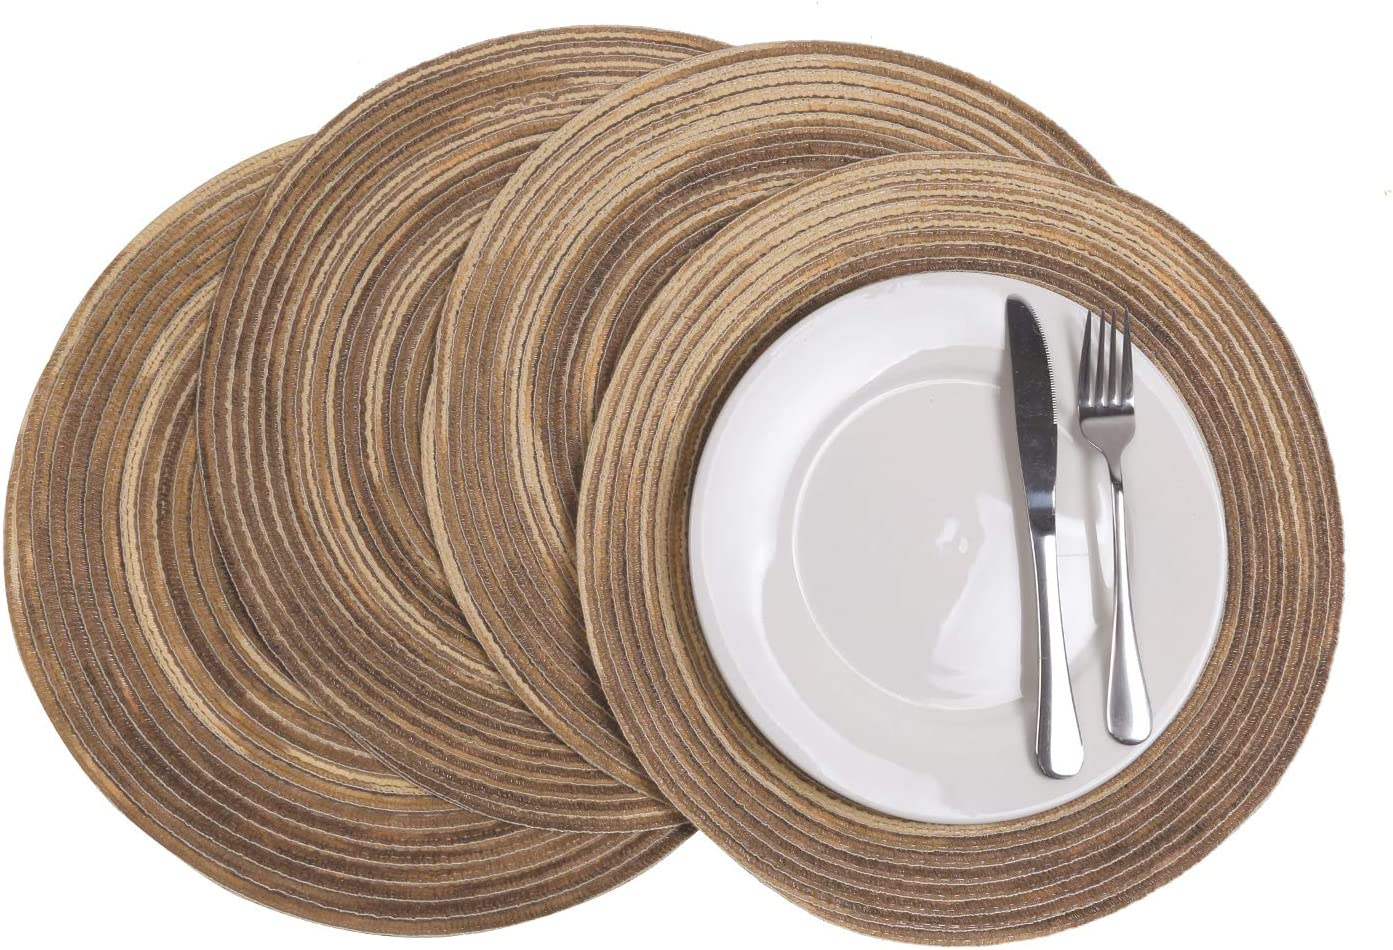 Shacos Round Table Mats